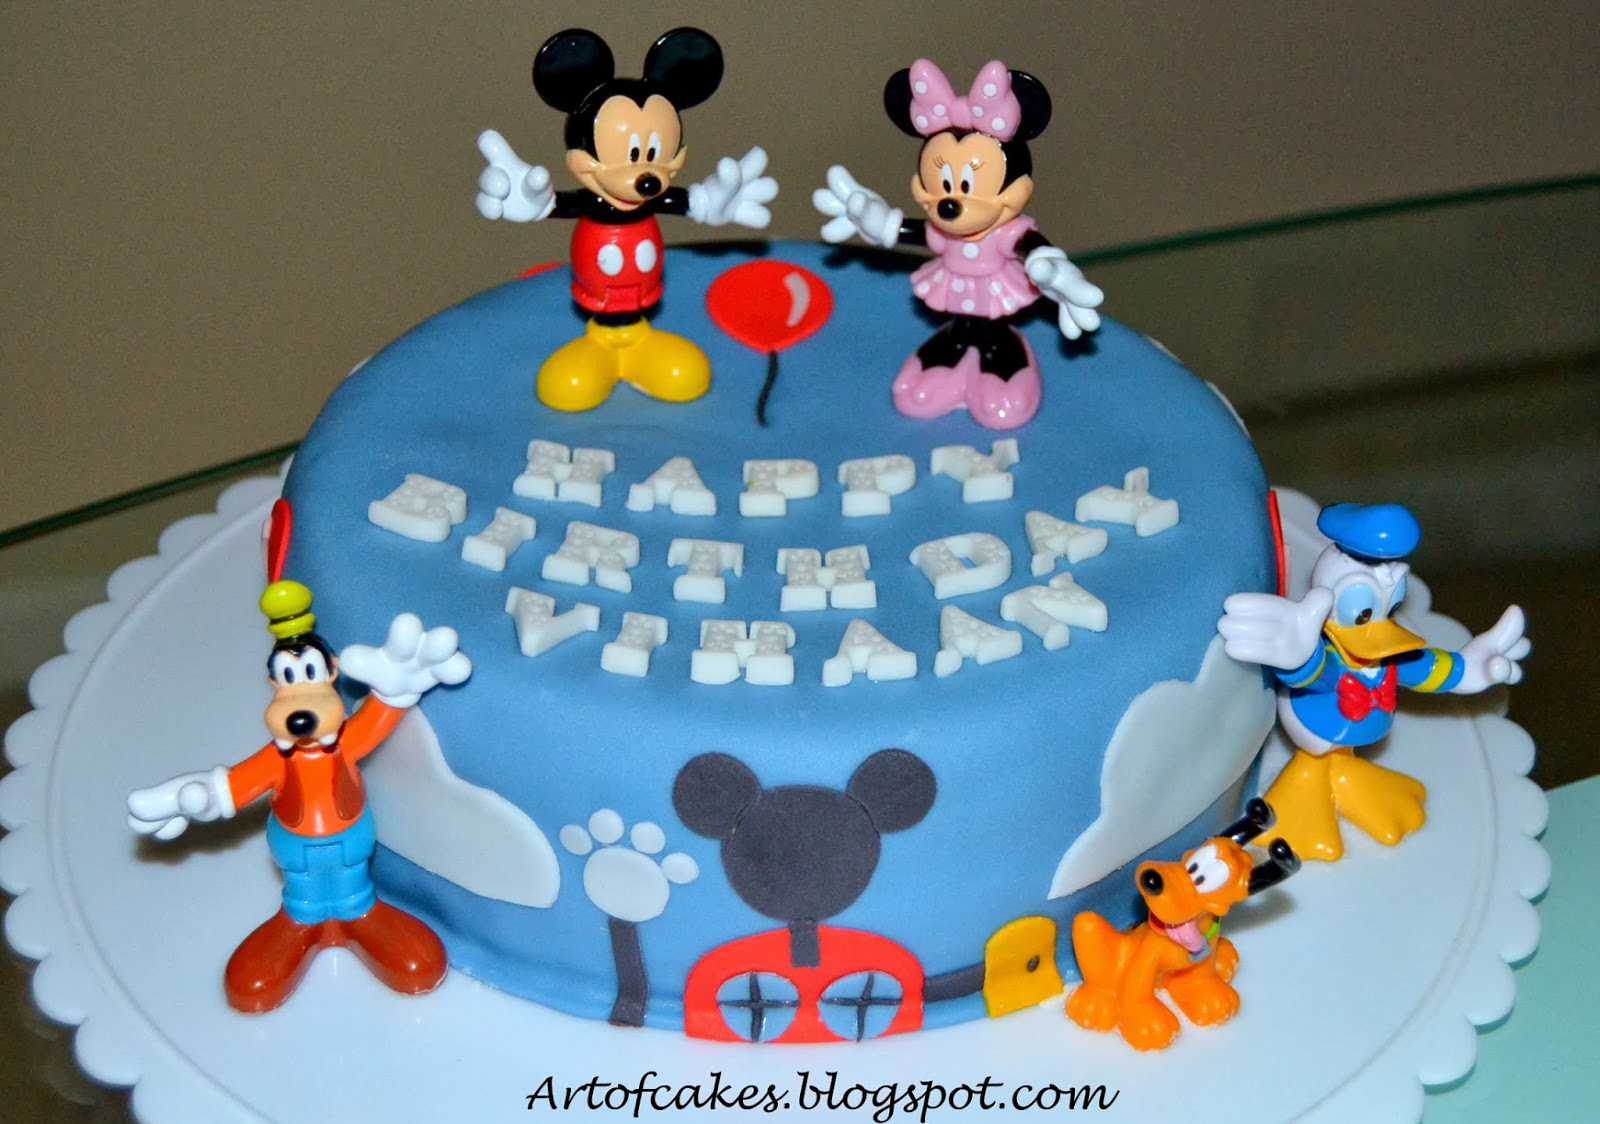 This Mickey Mouse Clubhouse Birthday Cake Is Designed For A 1 Year Old Boy Who Loves His Friends